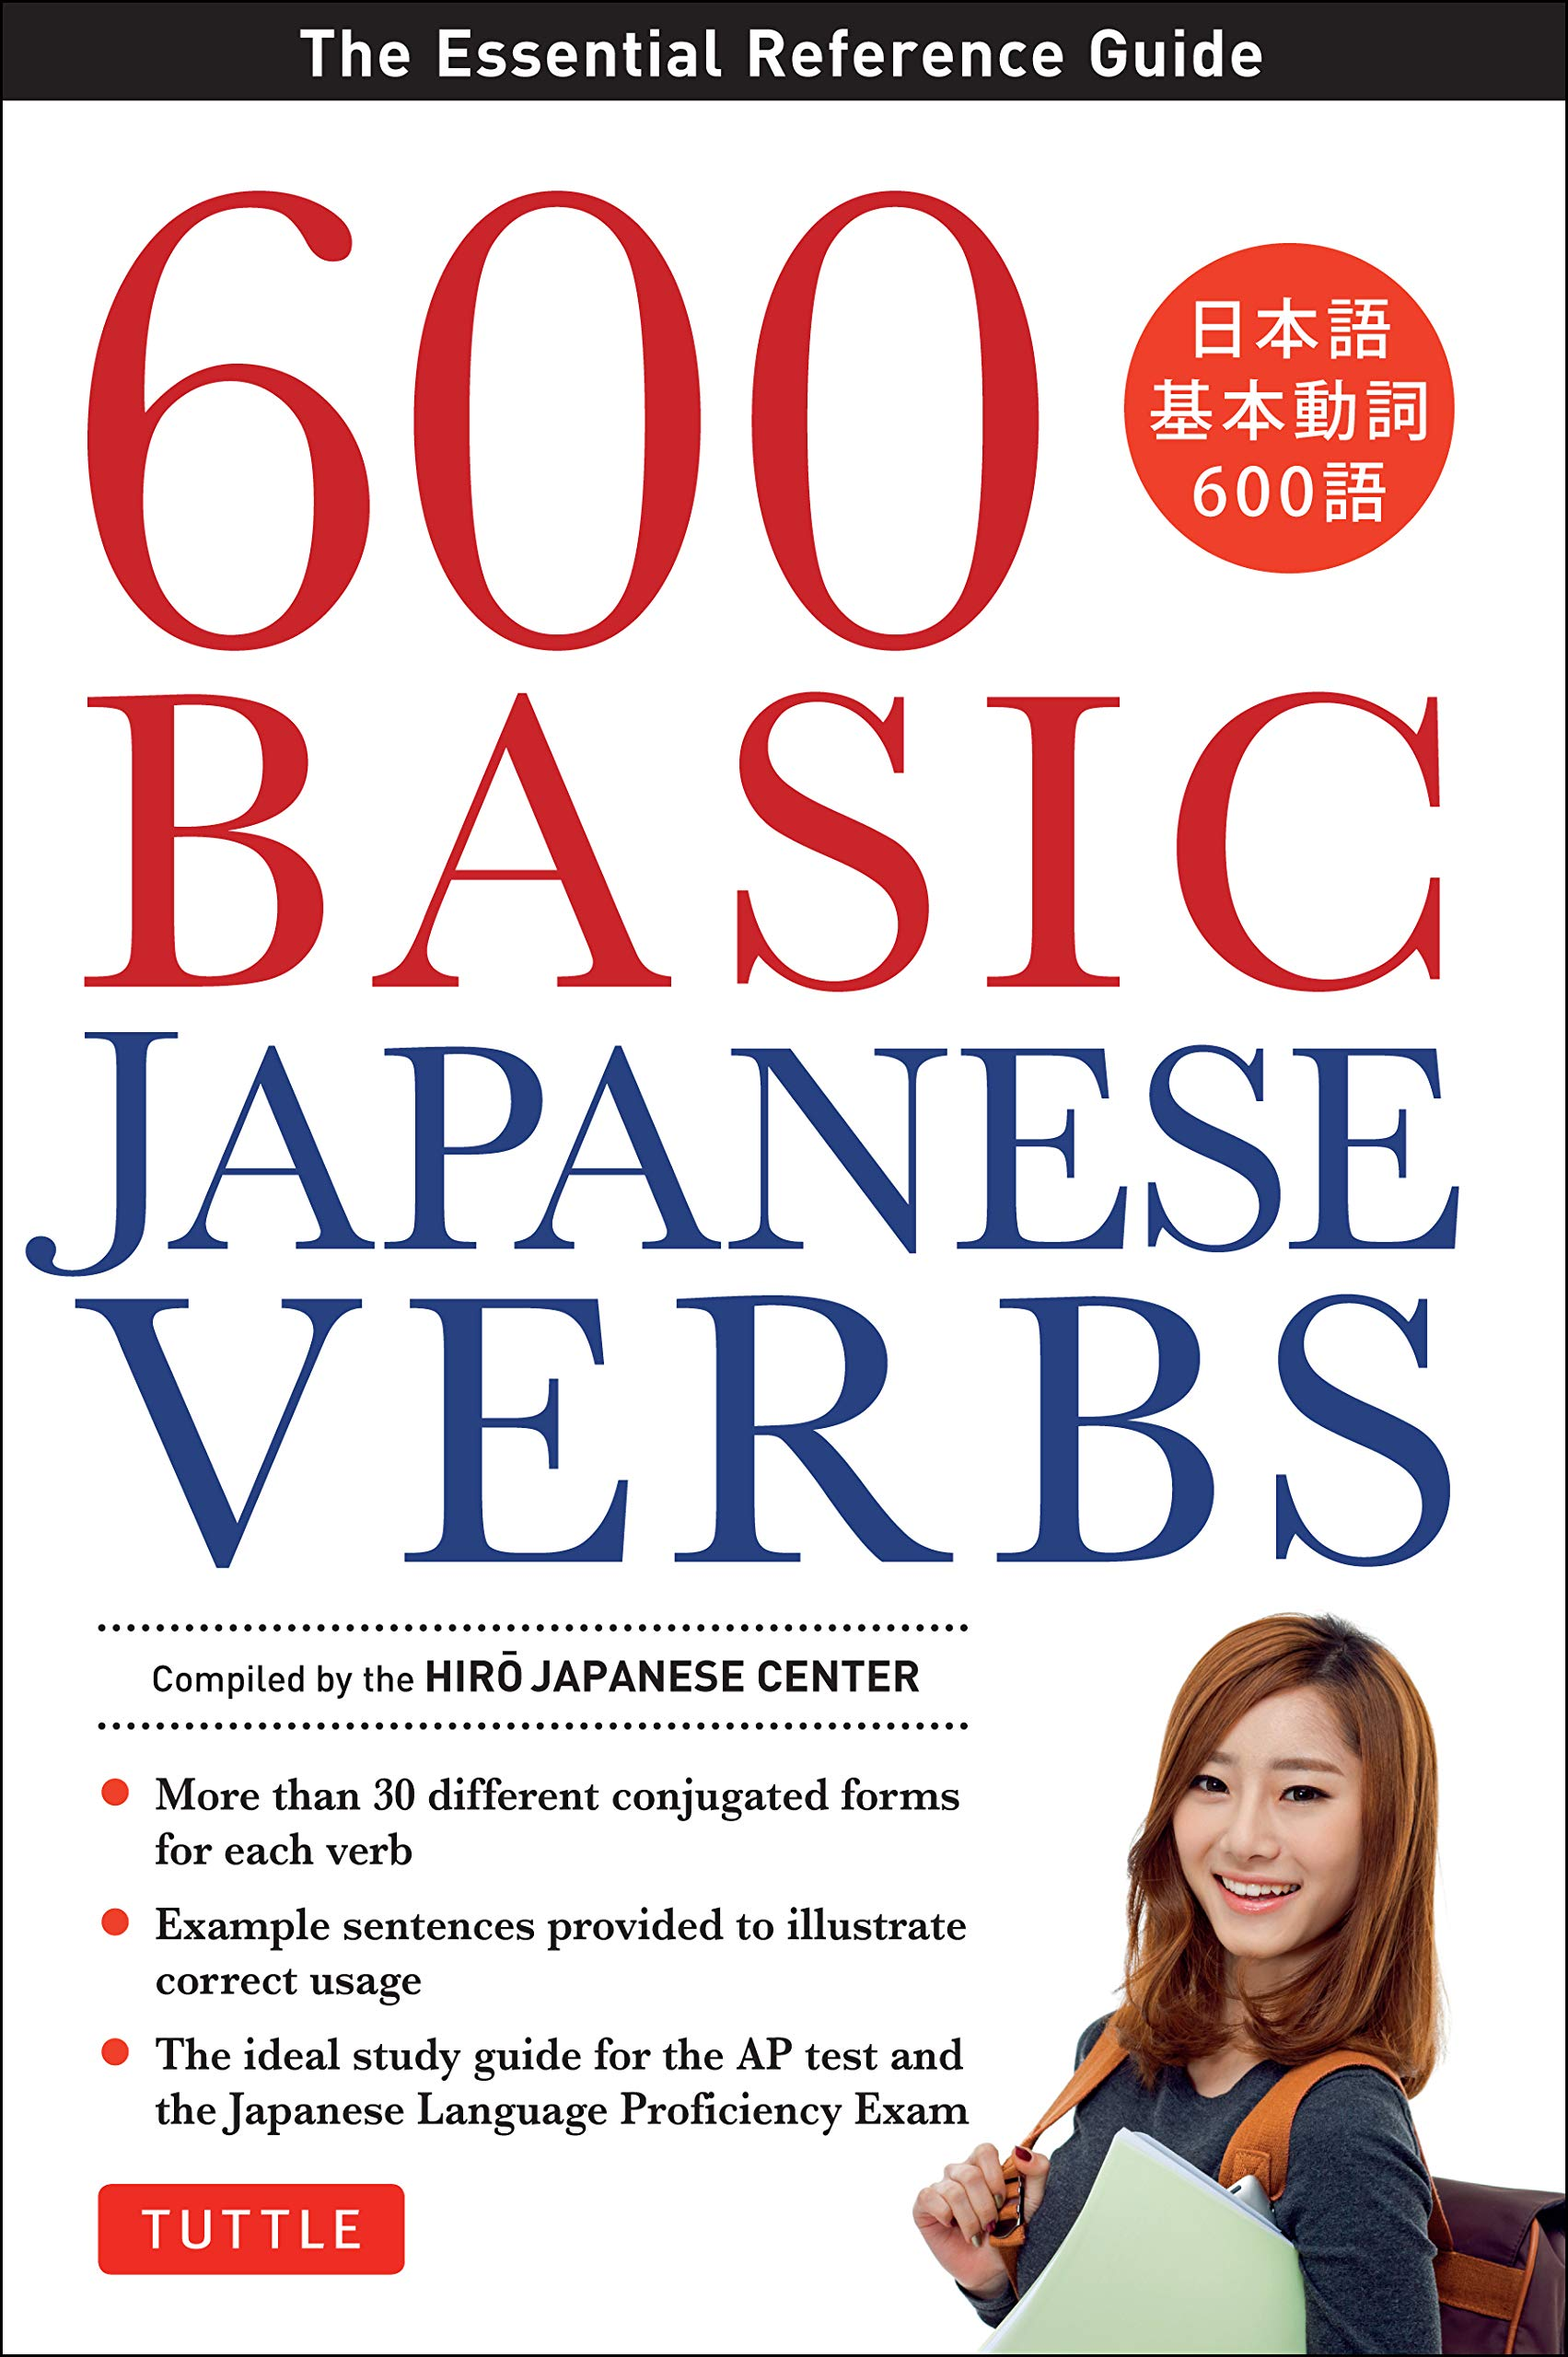 Amazon Com 600 Basic Japanese Verbs The Essential Reference Guide Learn The Japanese Vocabulary And Grammar You Need To Learn Japanese And Master The Jlpt 9784805312377 Japanese Center The Hiro Books